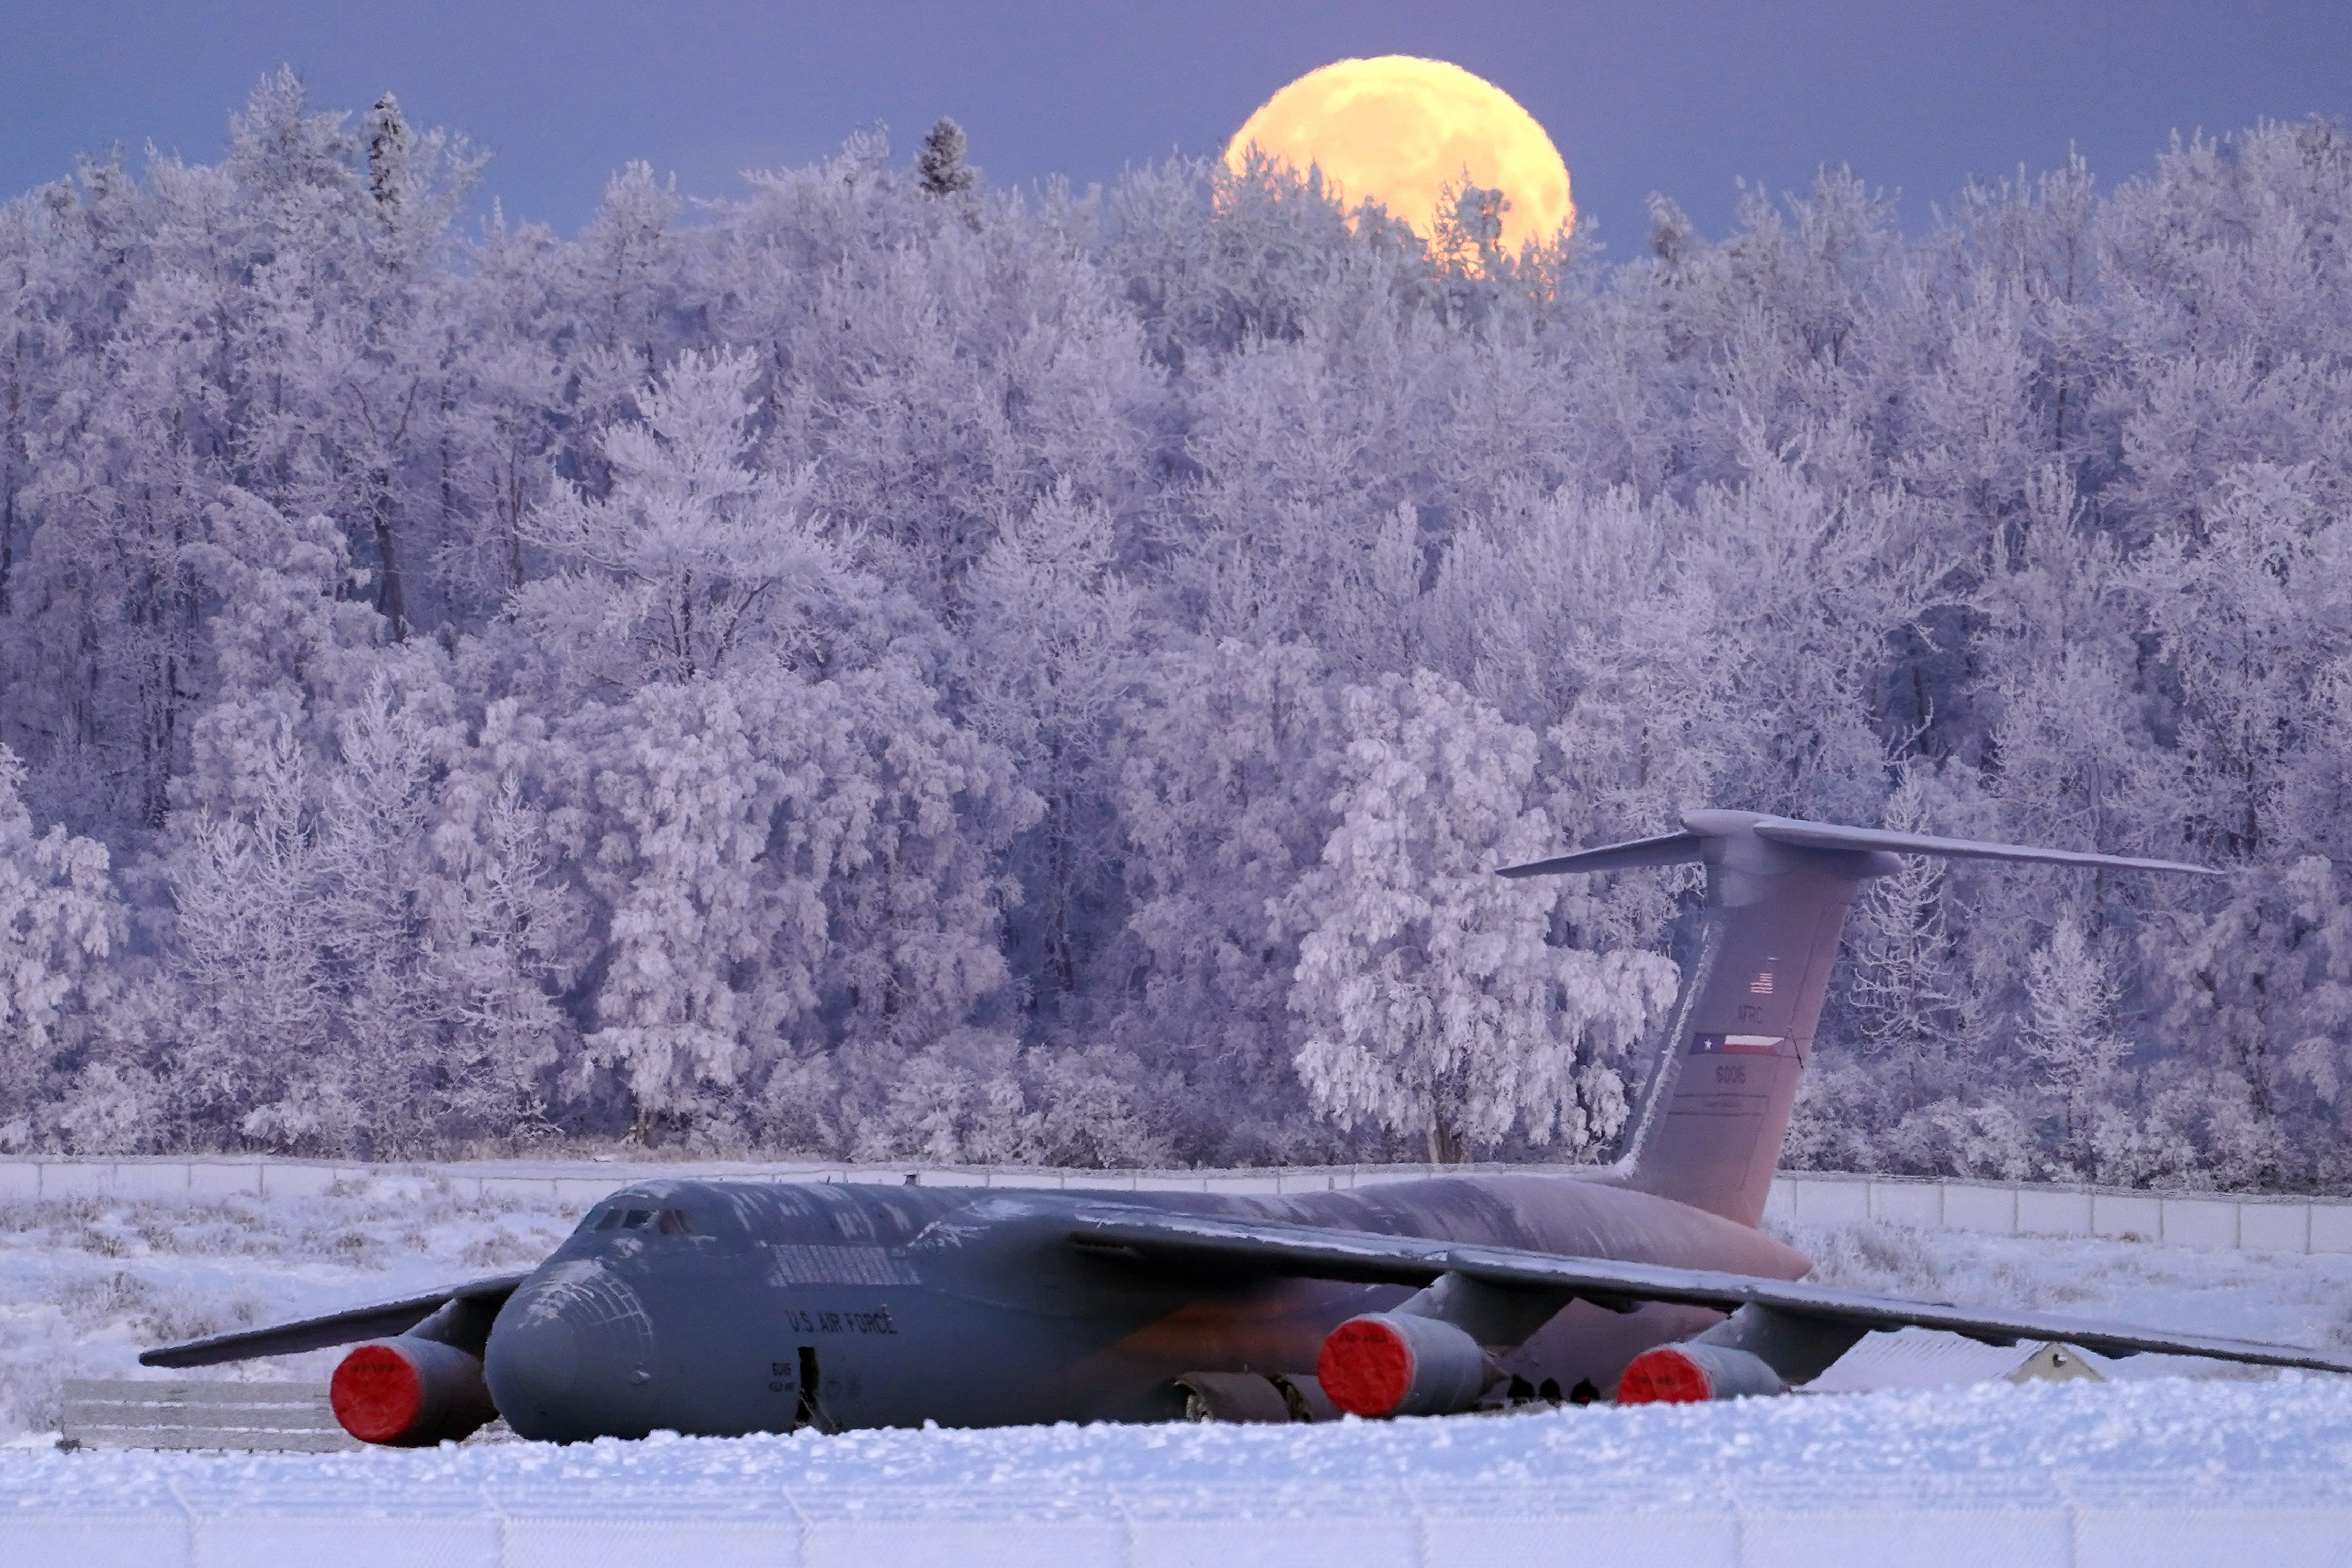 The waning gibbous moon is seen above a U.S. Air Force C-5 Galaxy transport aircraft on the flight line at Joint Base Elmendorf-Richardson, Alaska, Jan 10, 2020, as hoarfrost engulfs nearby trees in -16F weather while airmen work around the plane. (Justin Connaher/Air Force)